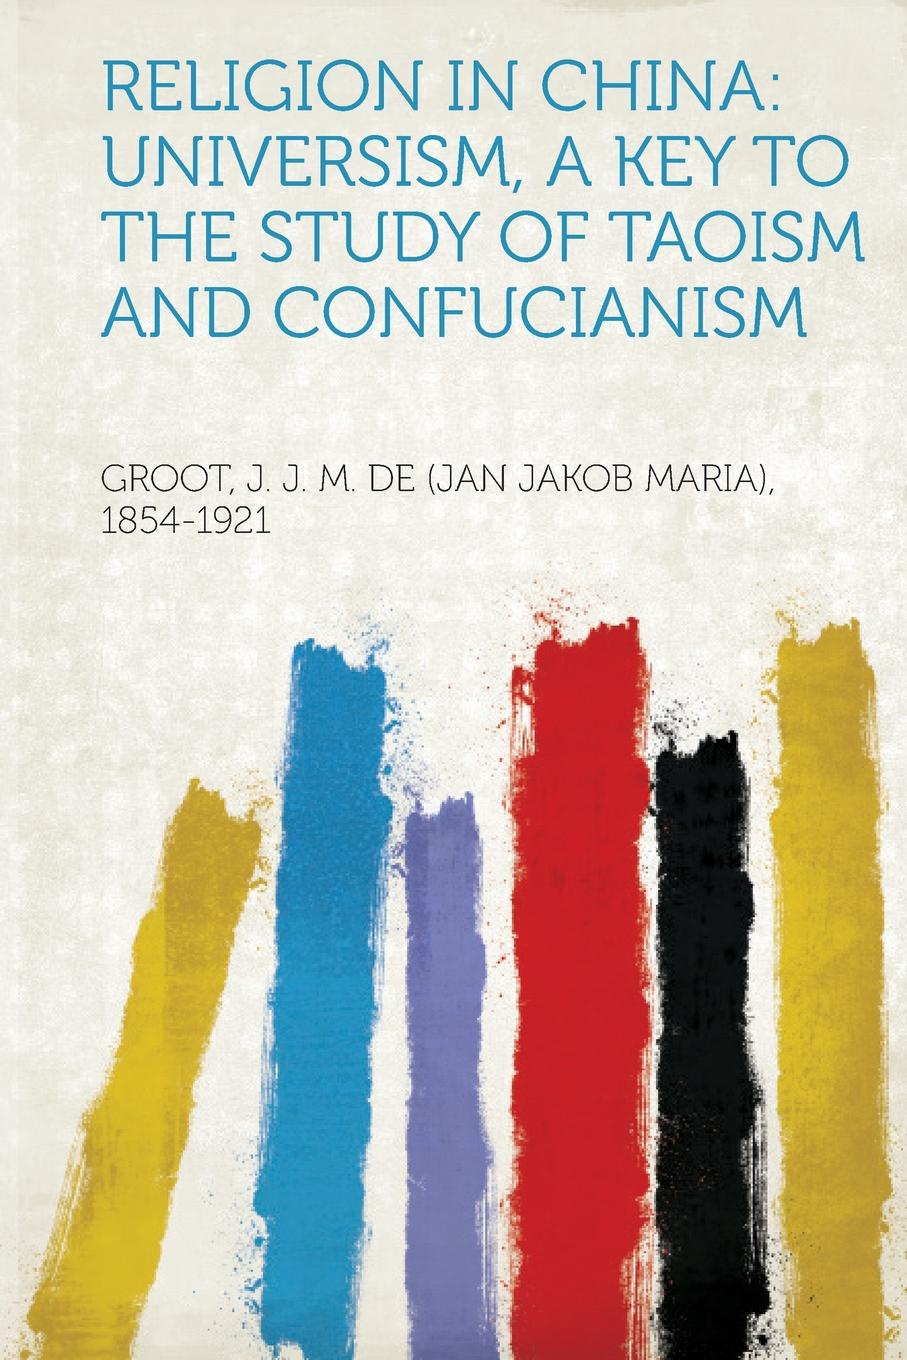 Groot J. J. M. De (Jan Jakob 1854-1921 Religion in China. Universism, a Key to the Study of Taoism and Confucianism j j m de 1854 1921 groot buddhist masses for the dead at amoy